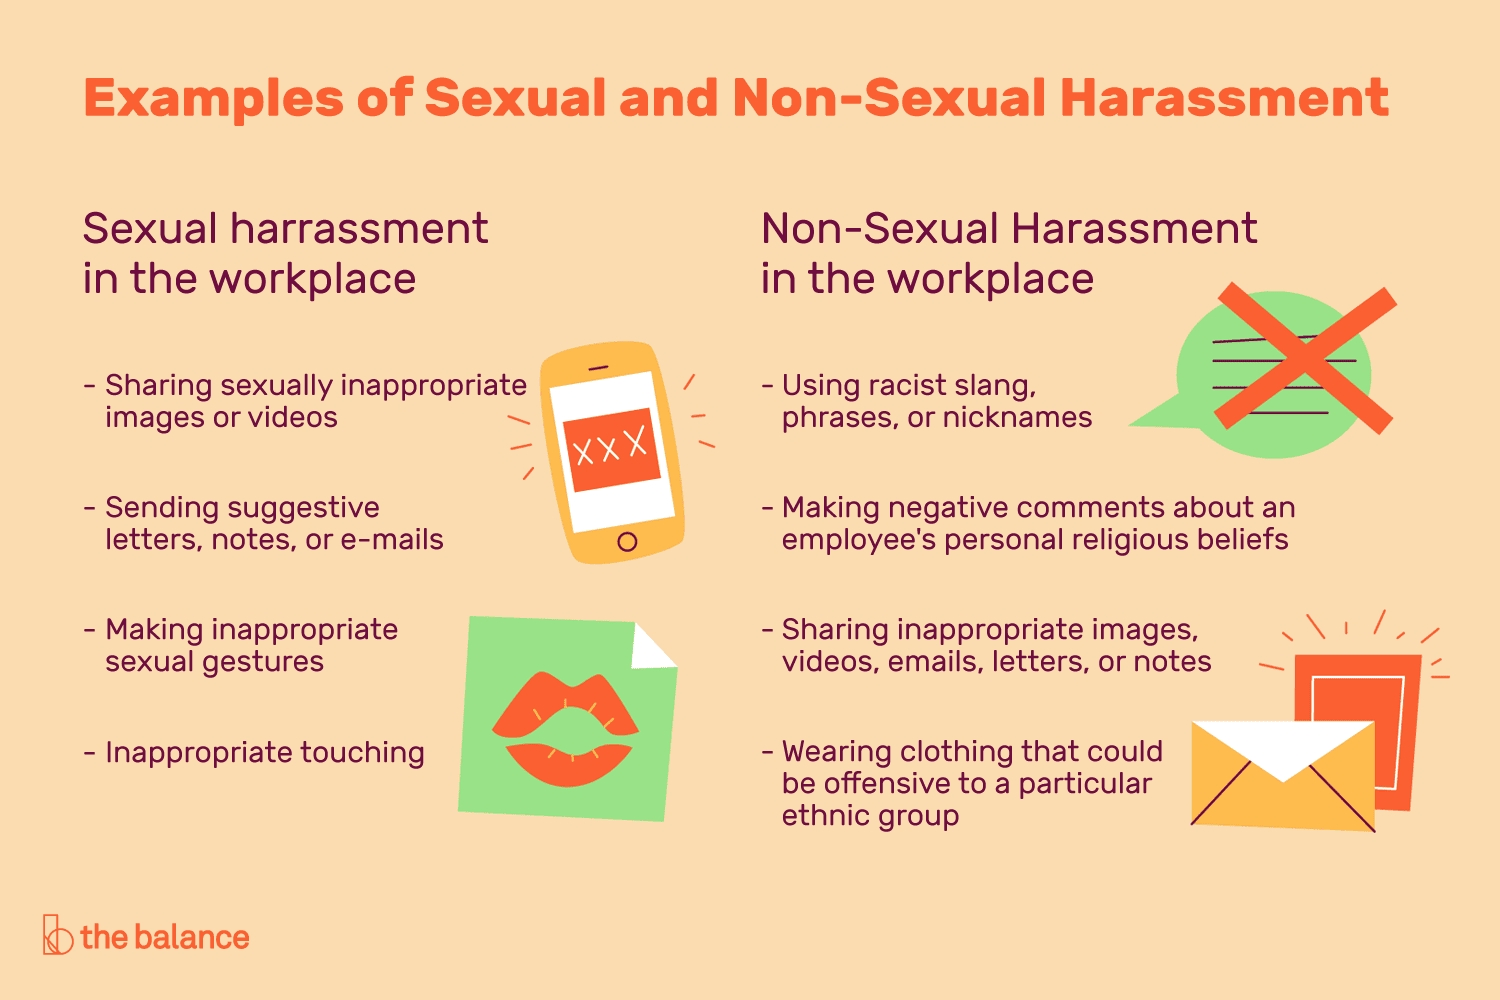 Examples Of Sexual And Non-Sexual Harassment At Work intended for Examples Of Harassment 58599